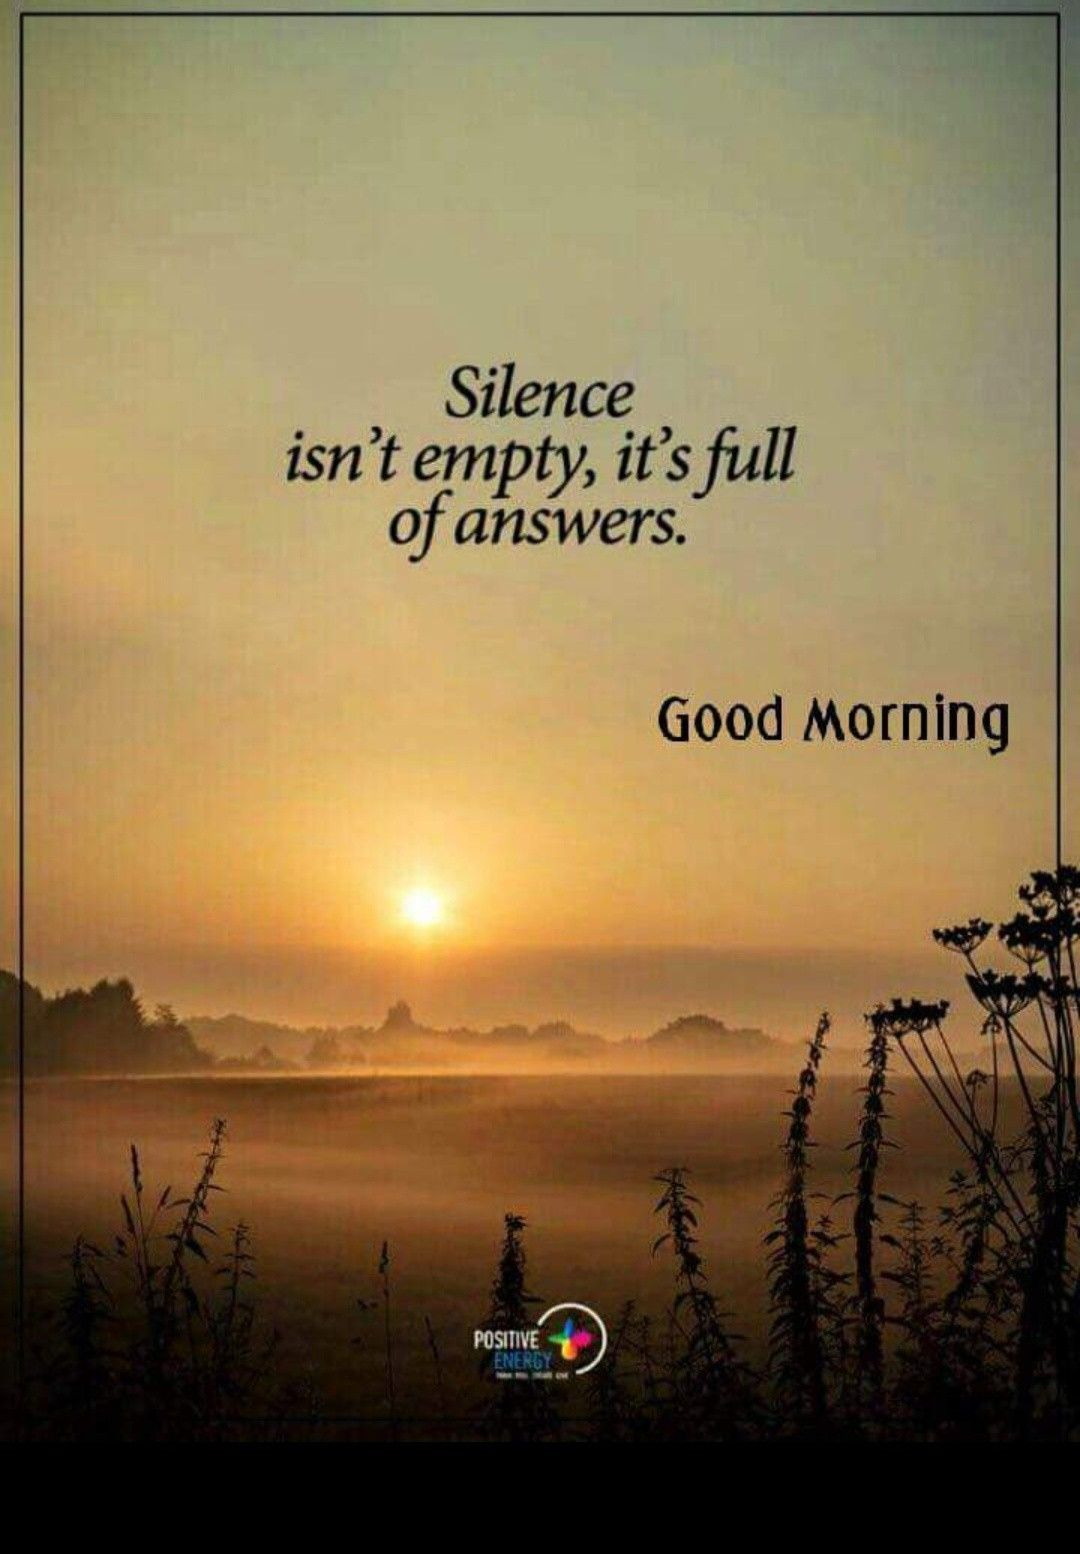 Pin By Dinesh Kumar Pandey On Good Morning Serenity Quotes Silence Quotes Morning Quotes Images